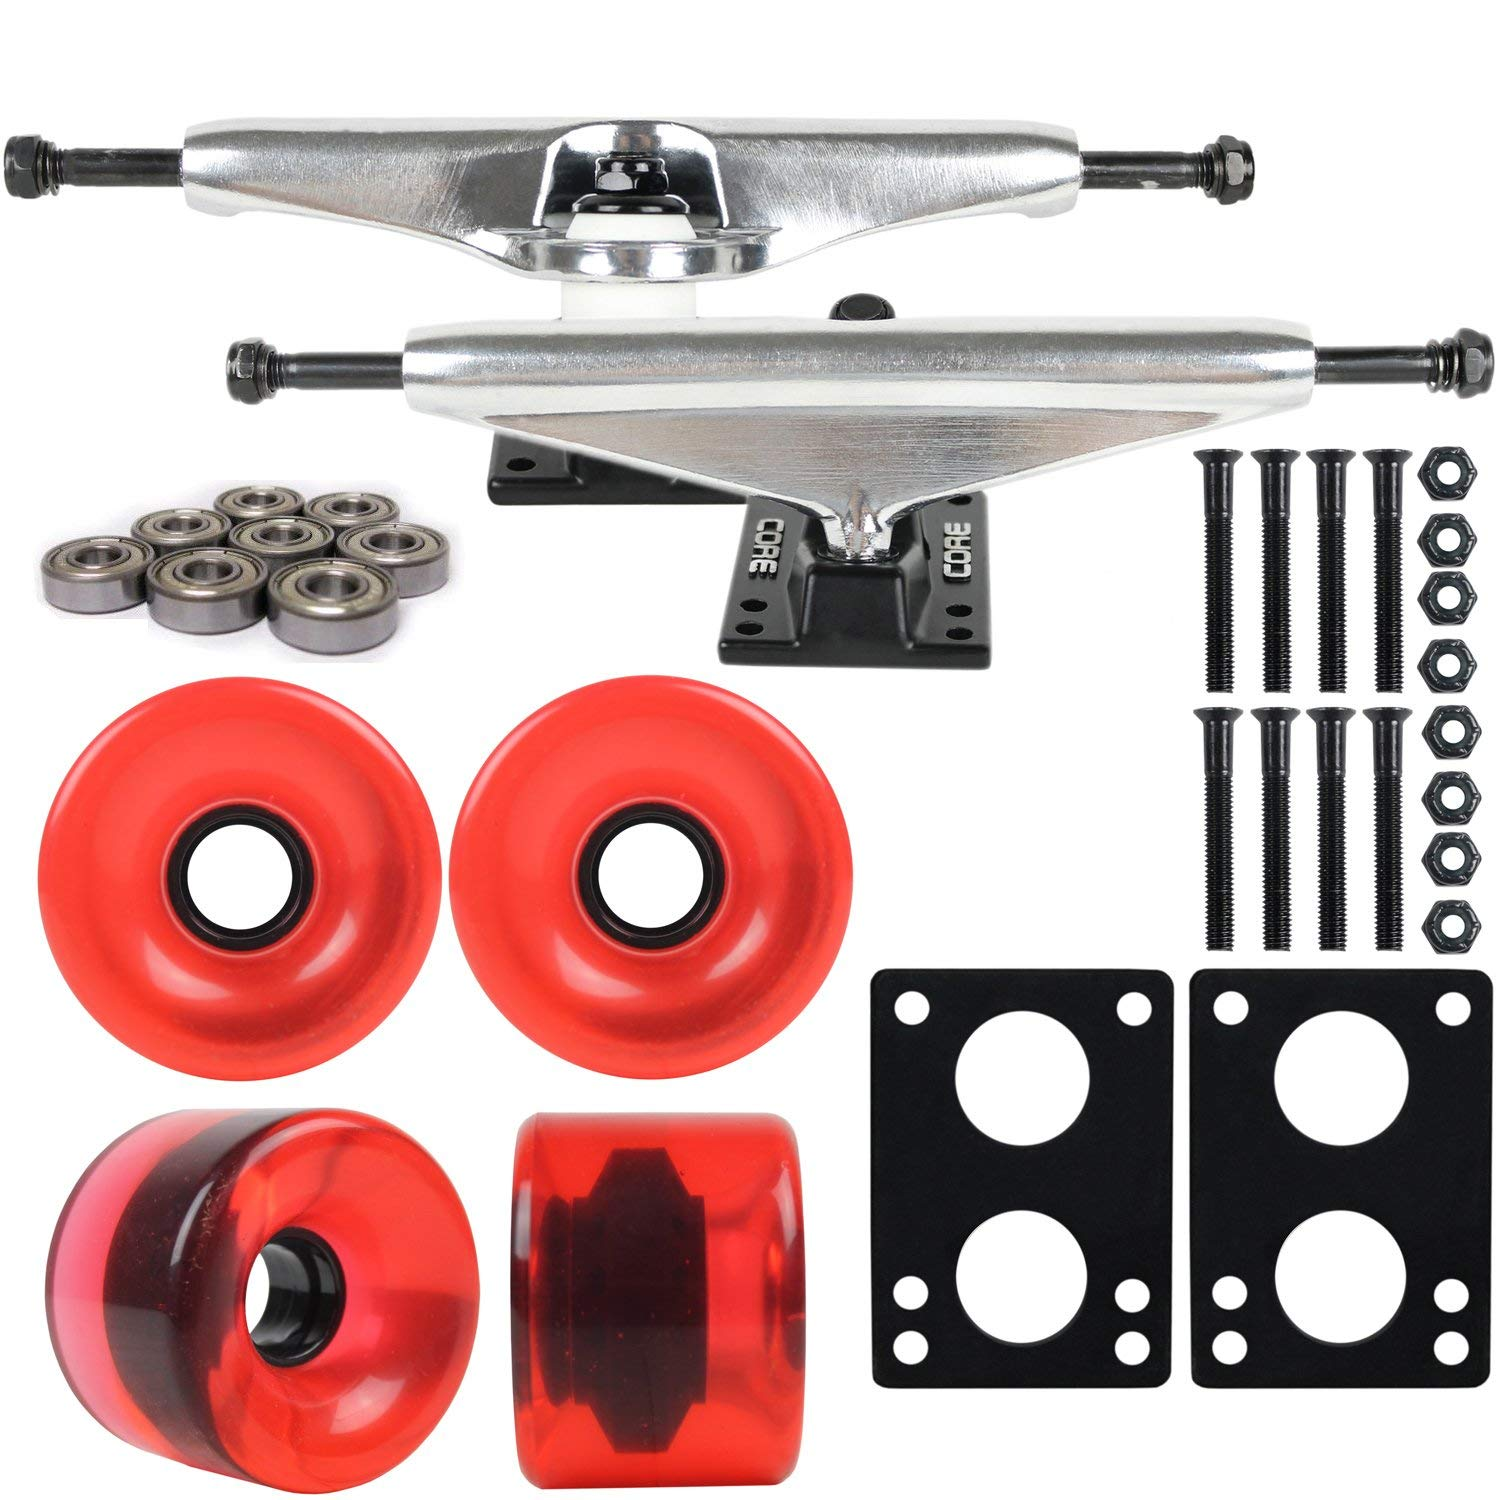 "Longboard Skateboard Trucks Combo Set 76mm Blank Wheels with Silver Trucks, Bearings, and Hardware Package (76mm Translucent Red Wheels, 6.0 (9.63"") Silver Trucks)"